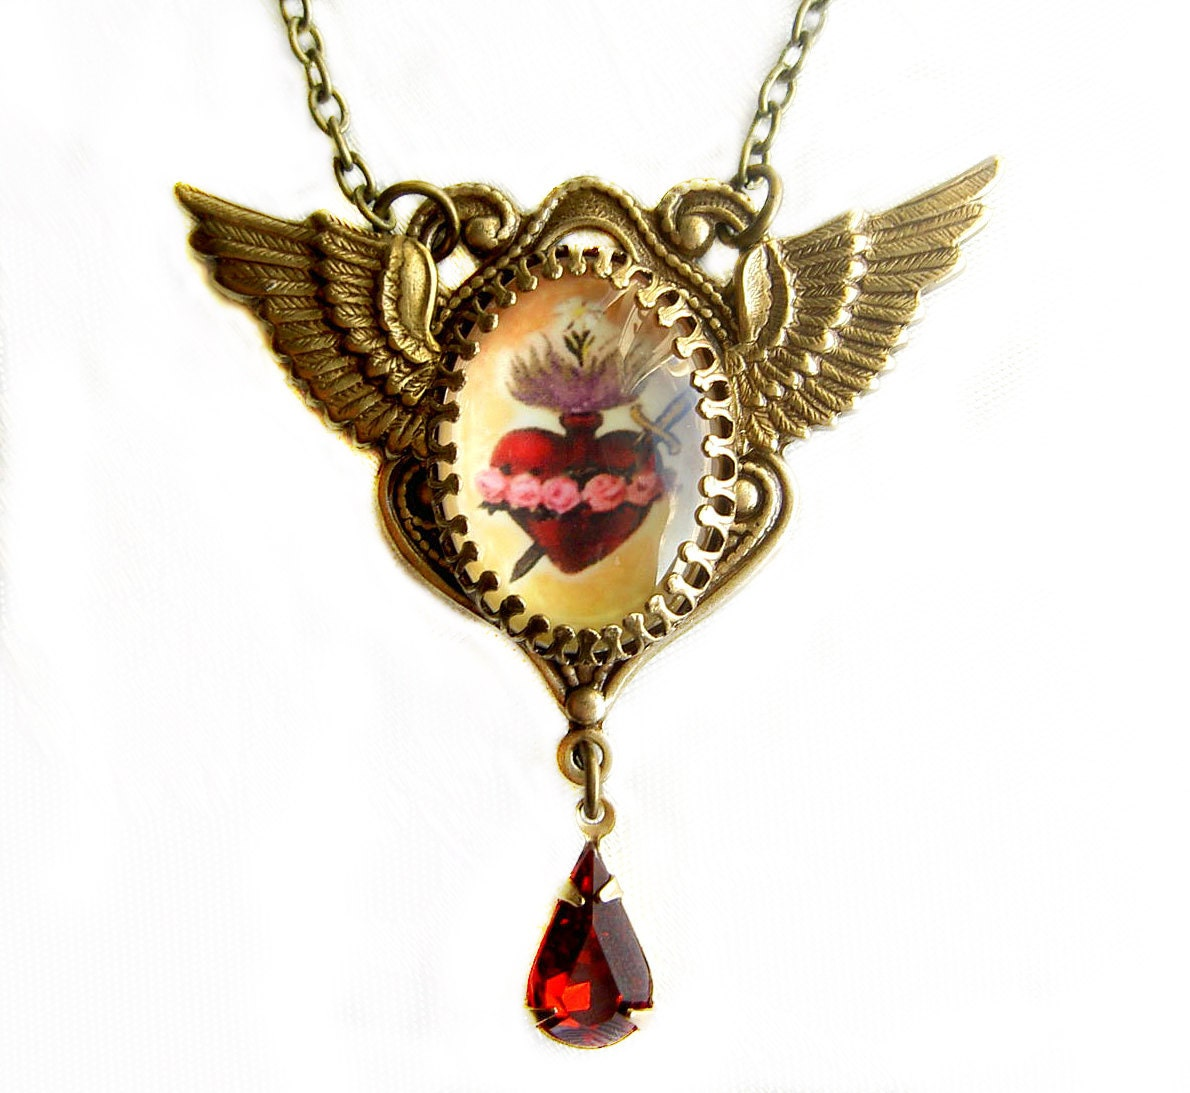 Sacred heart pendant immaculate heart wings necklace heart ampliar aloadofball Images